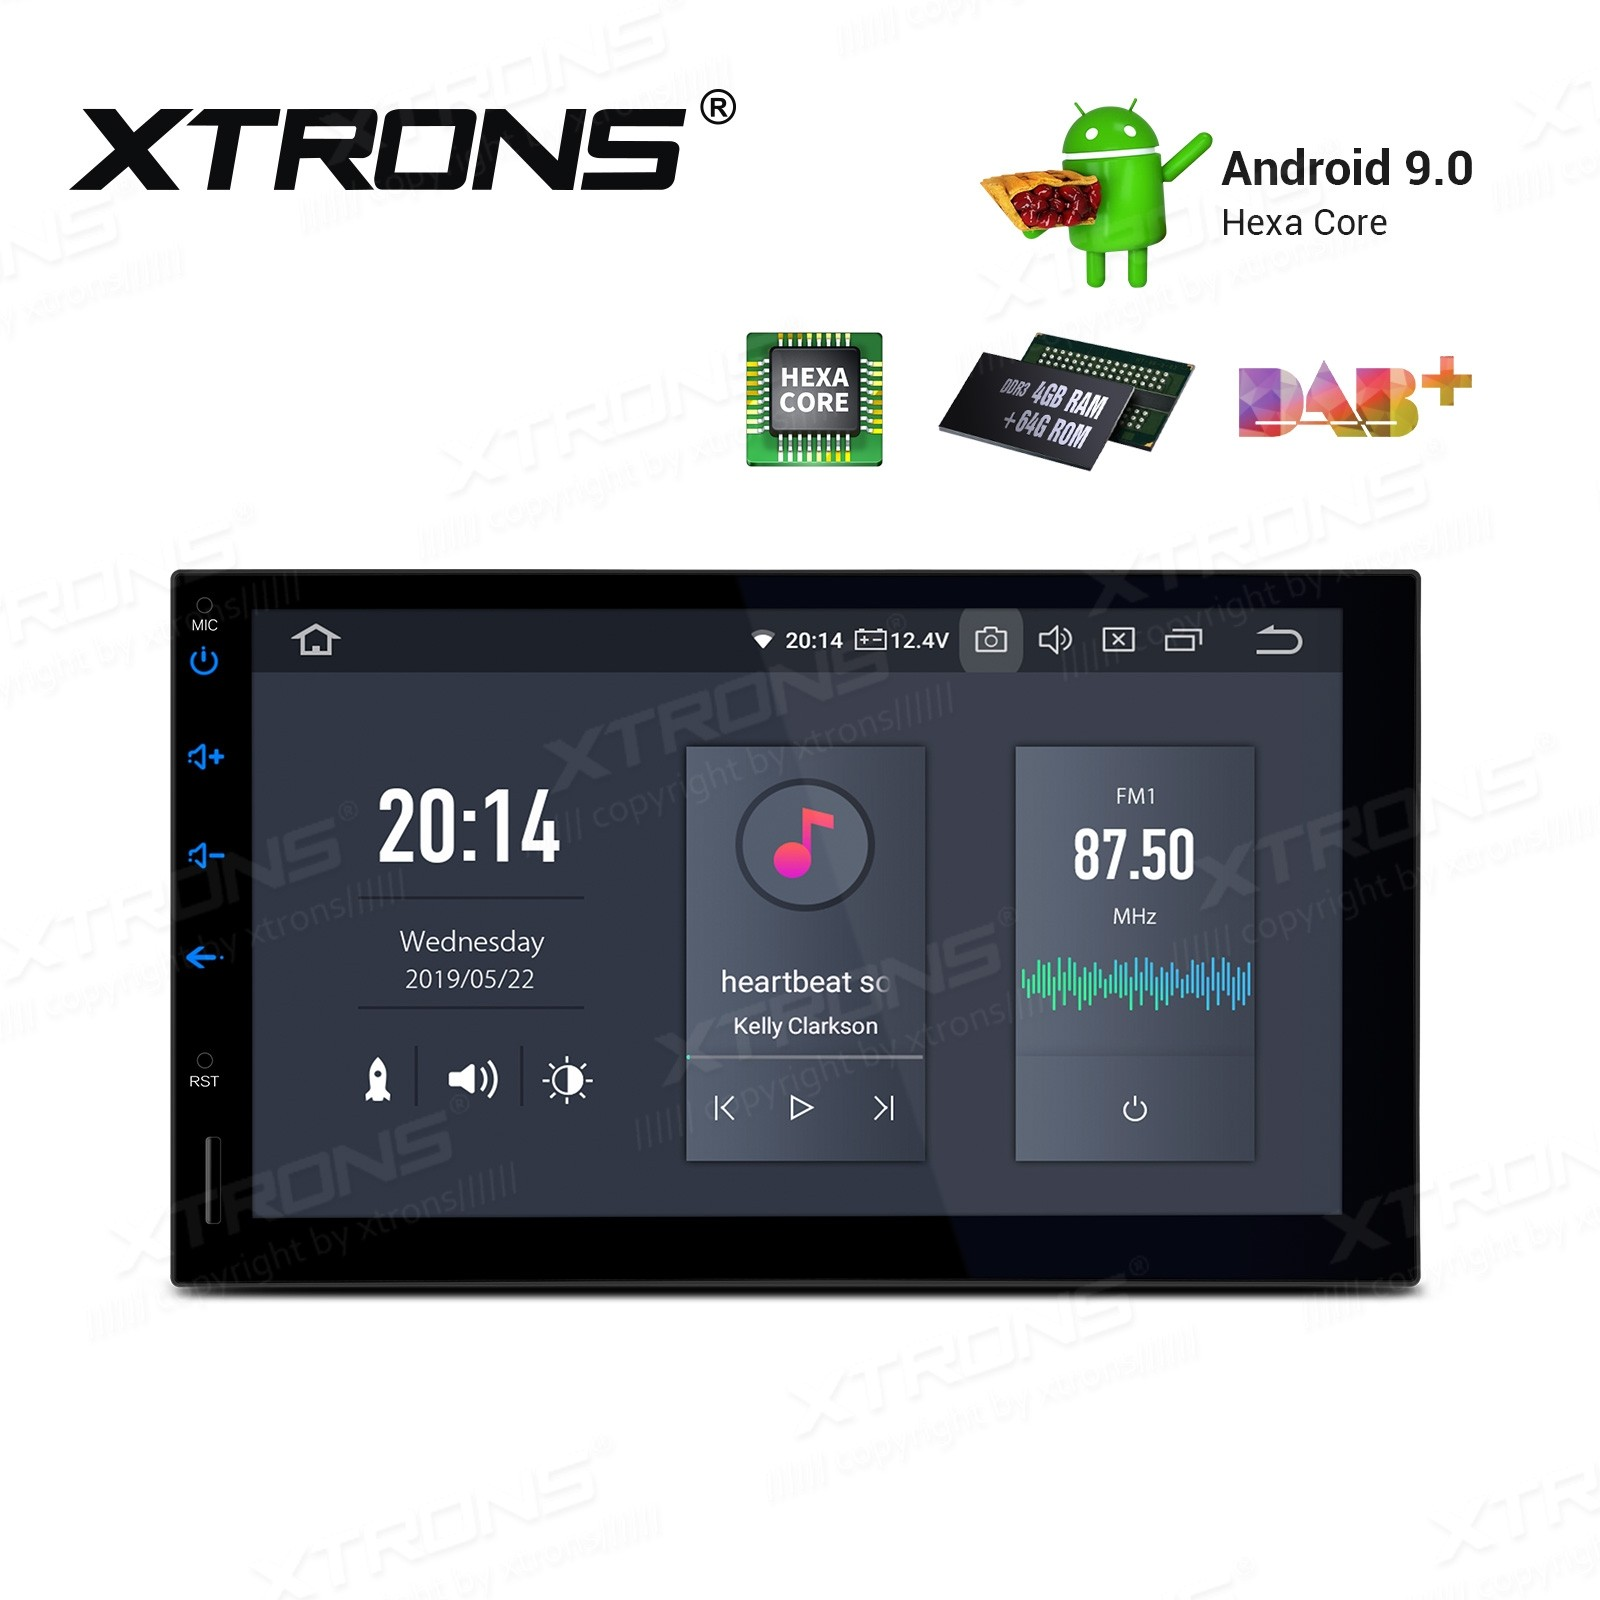 7 inch Android 9.0 Double Din car stereo Navigation system with HDMI Output